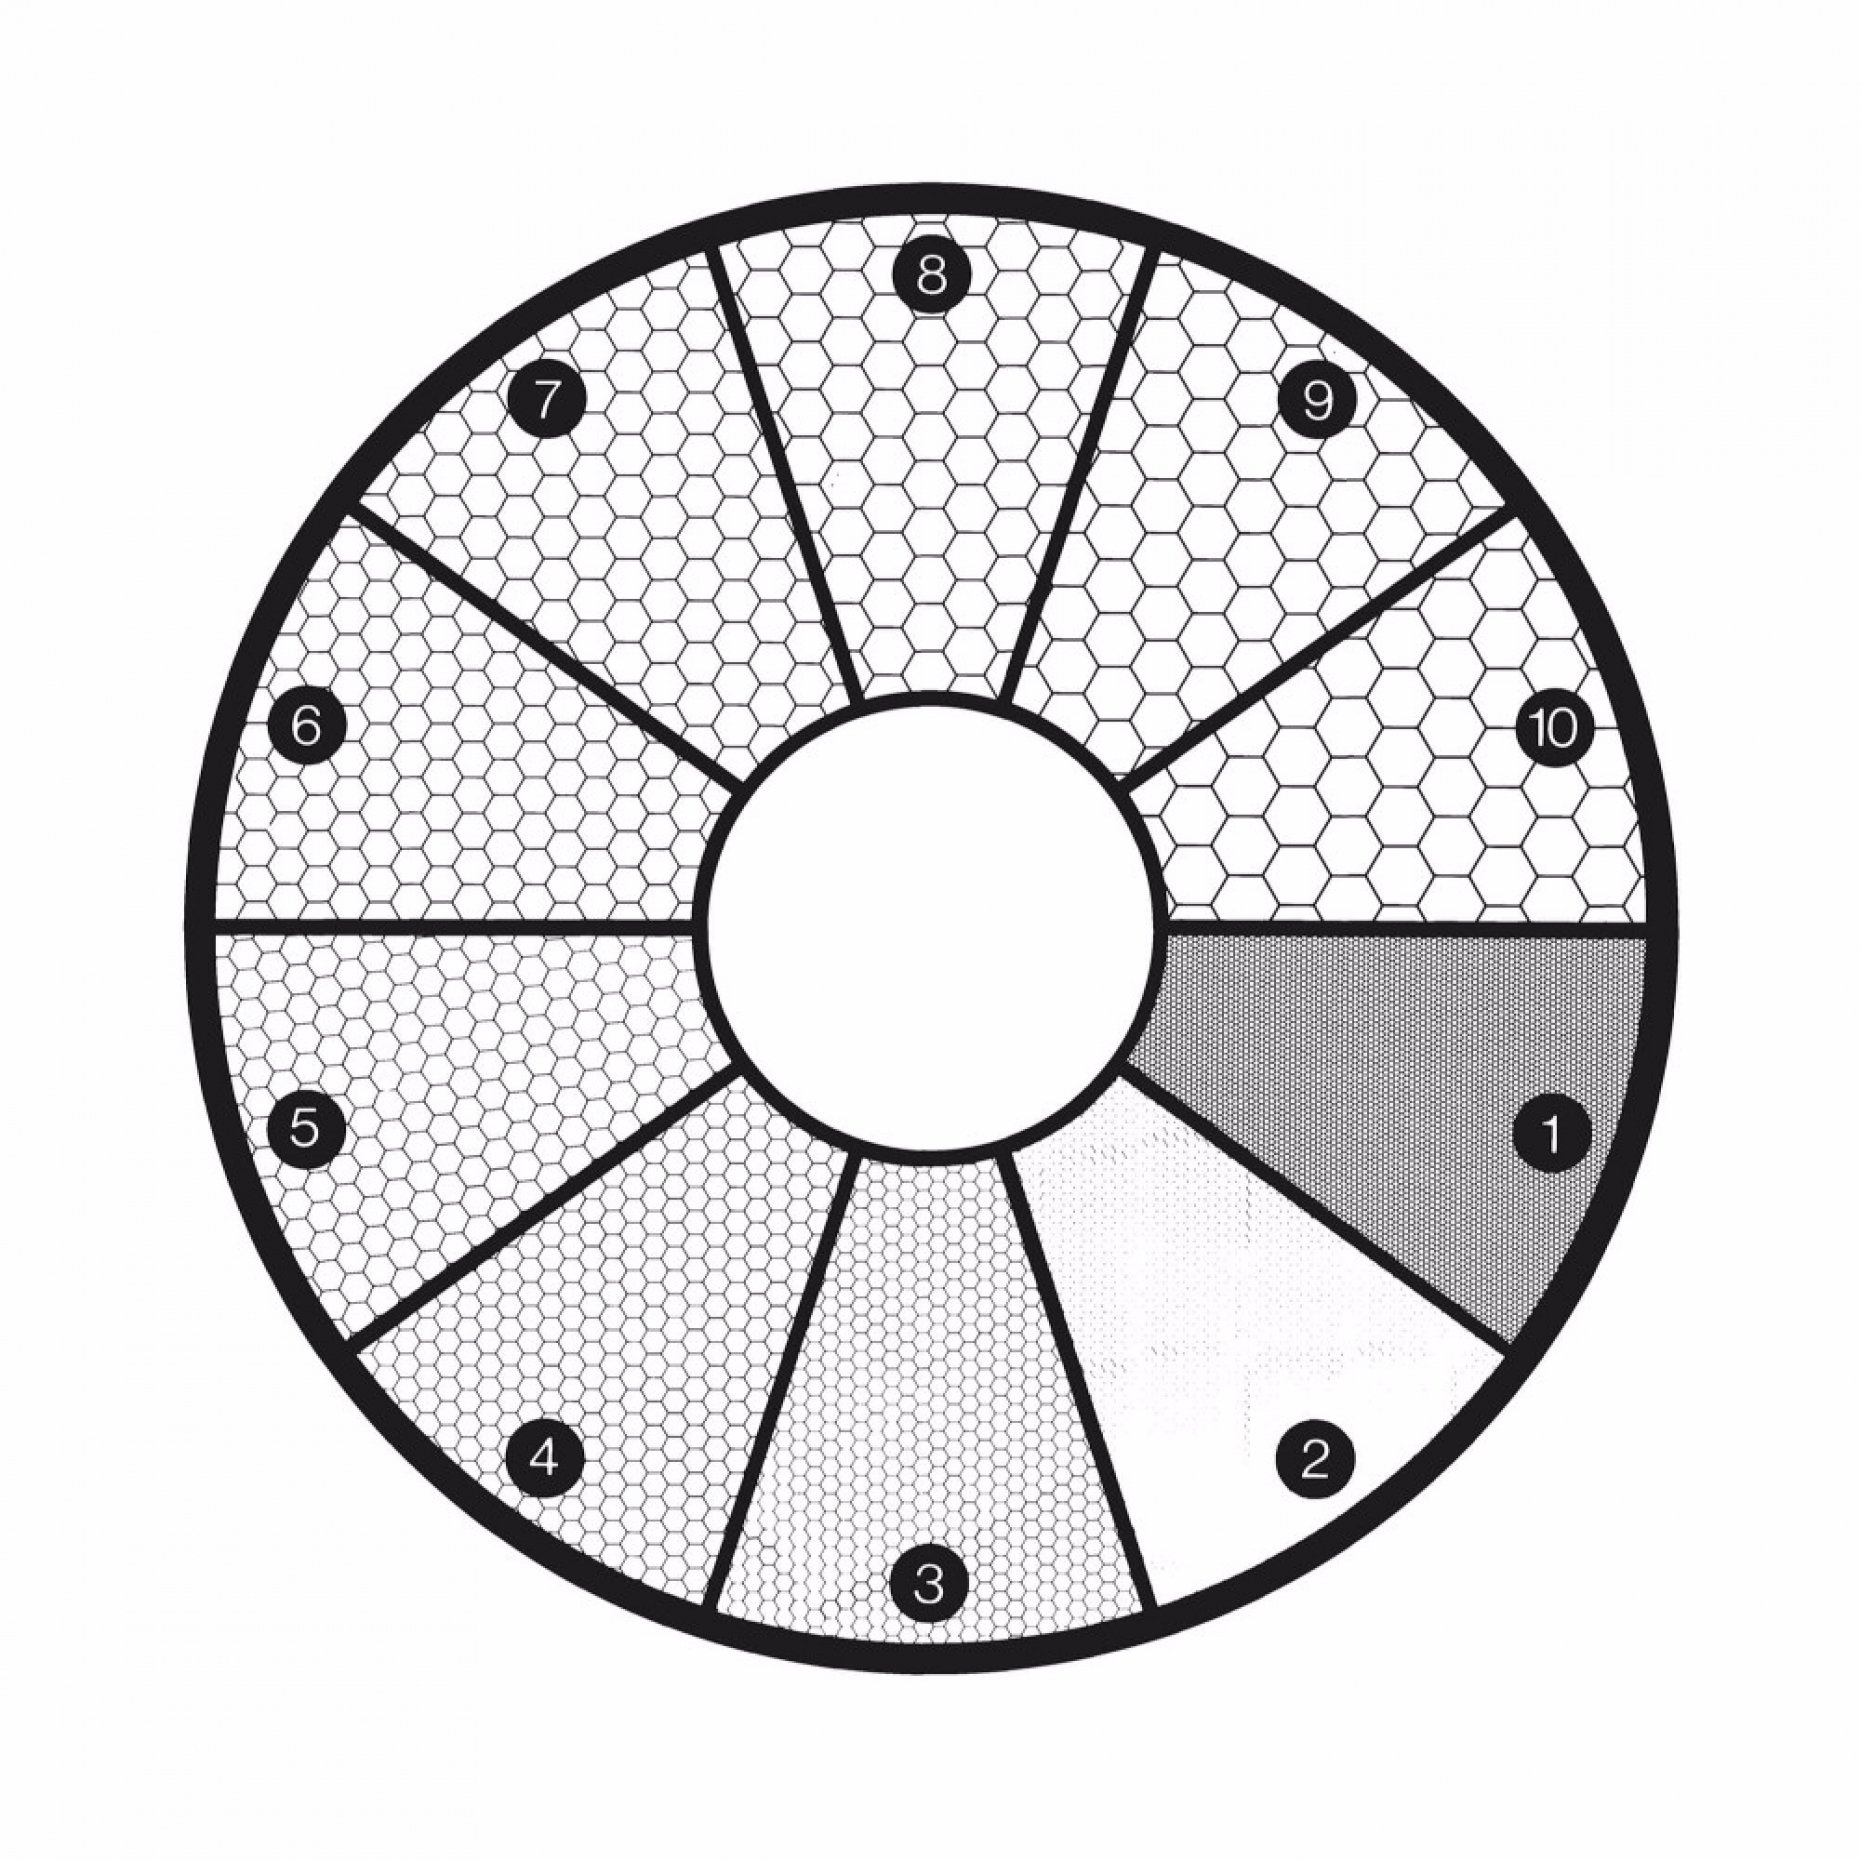 G45 ASTM E19-46 Grain Sizing Disc Pattern